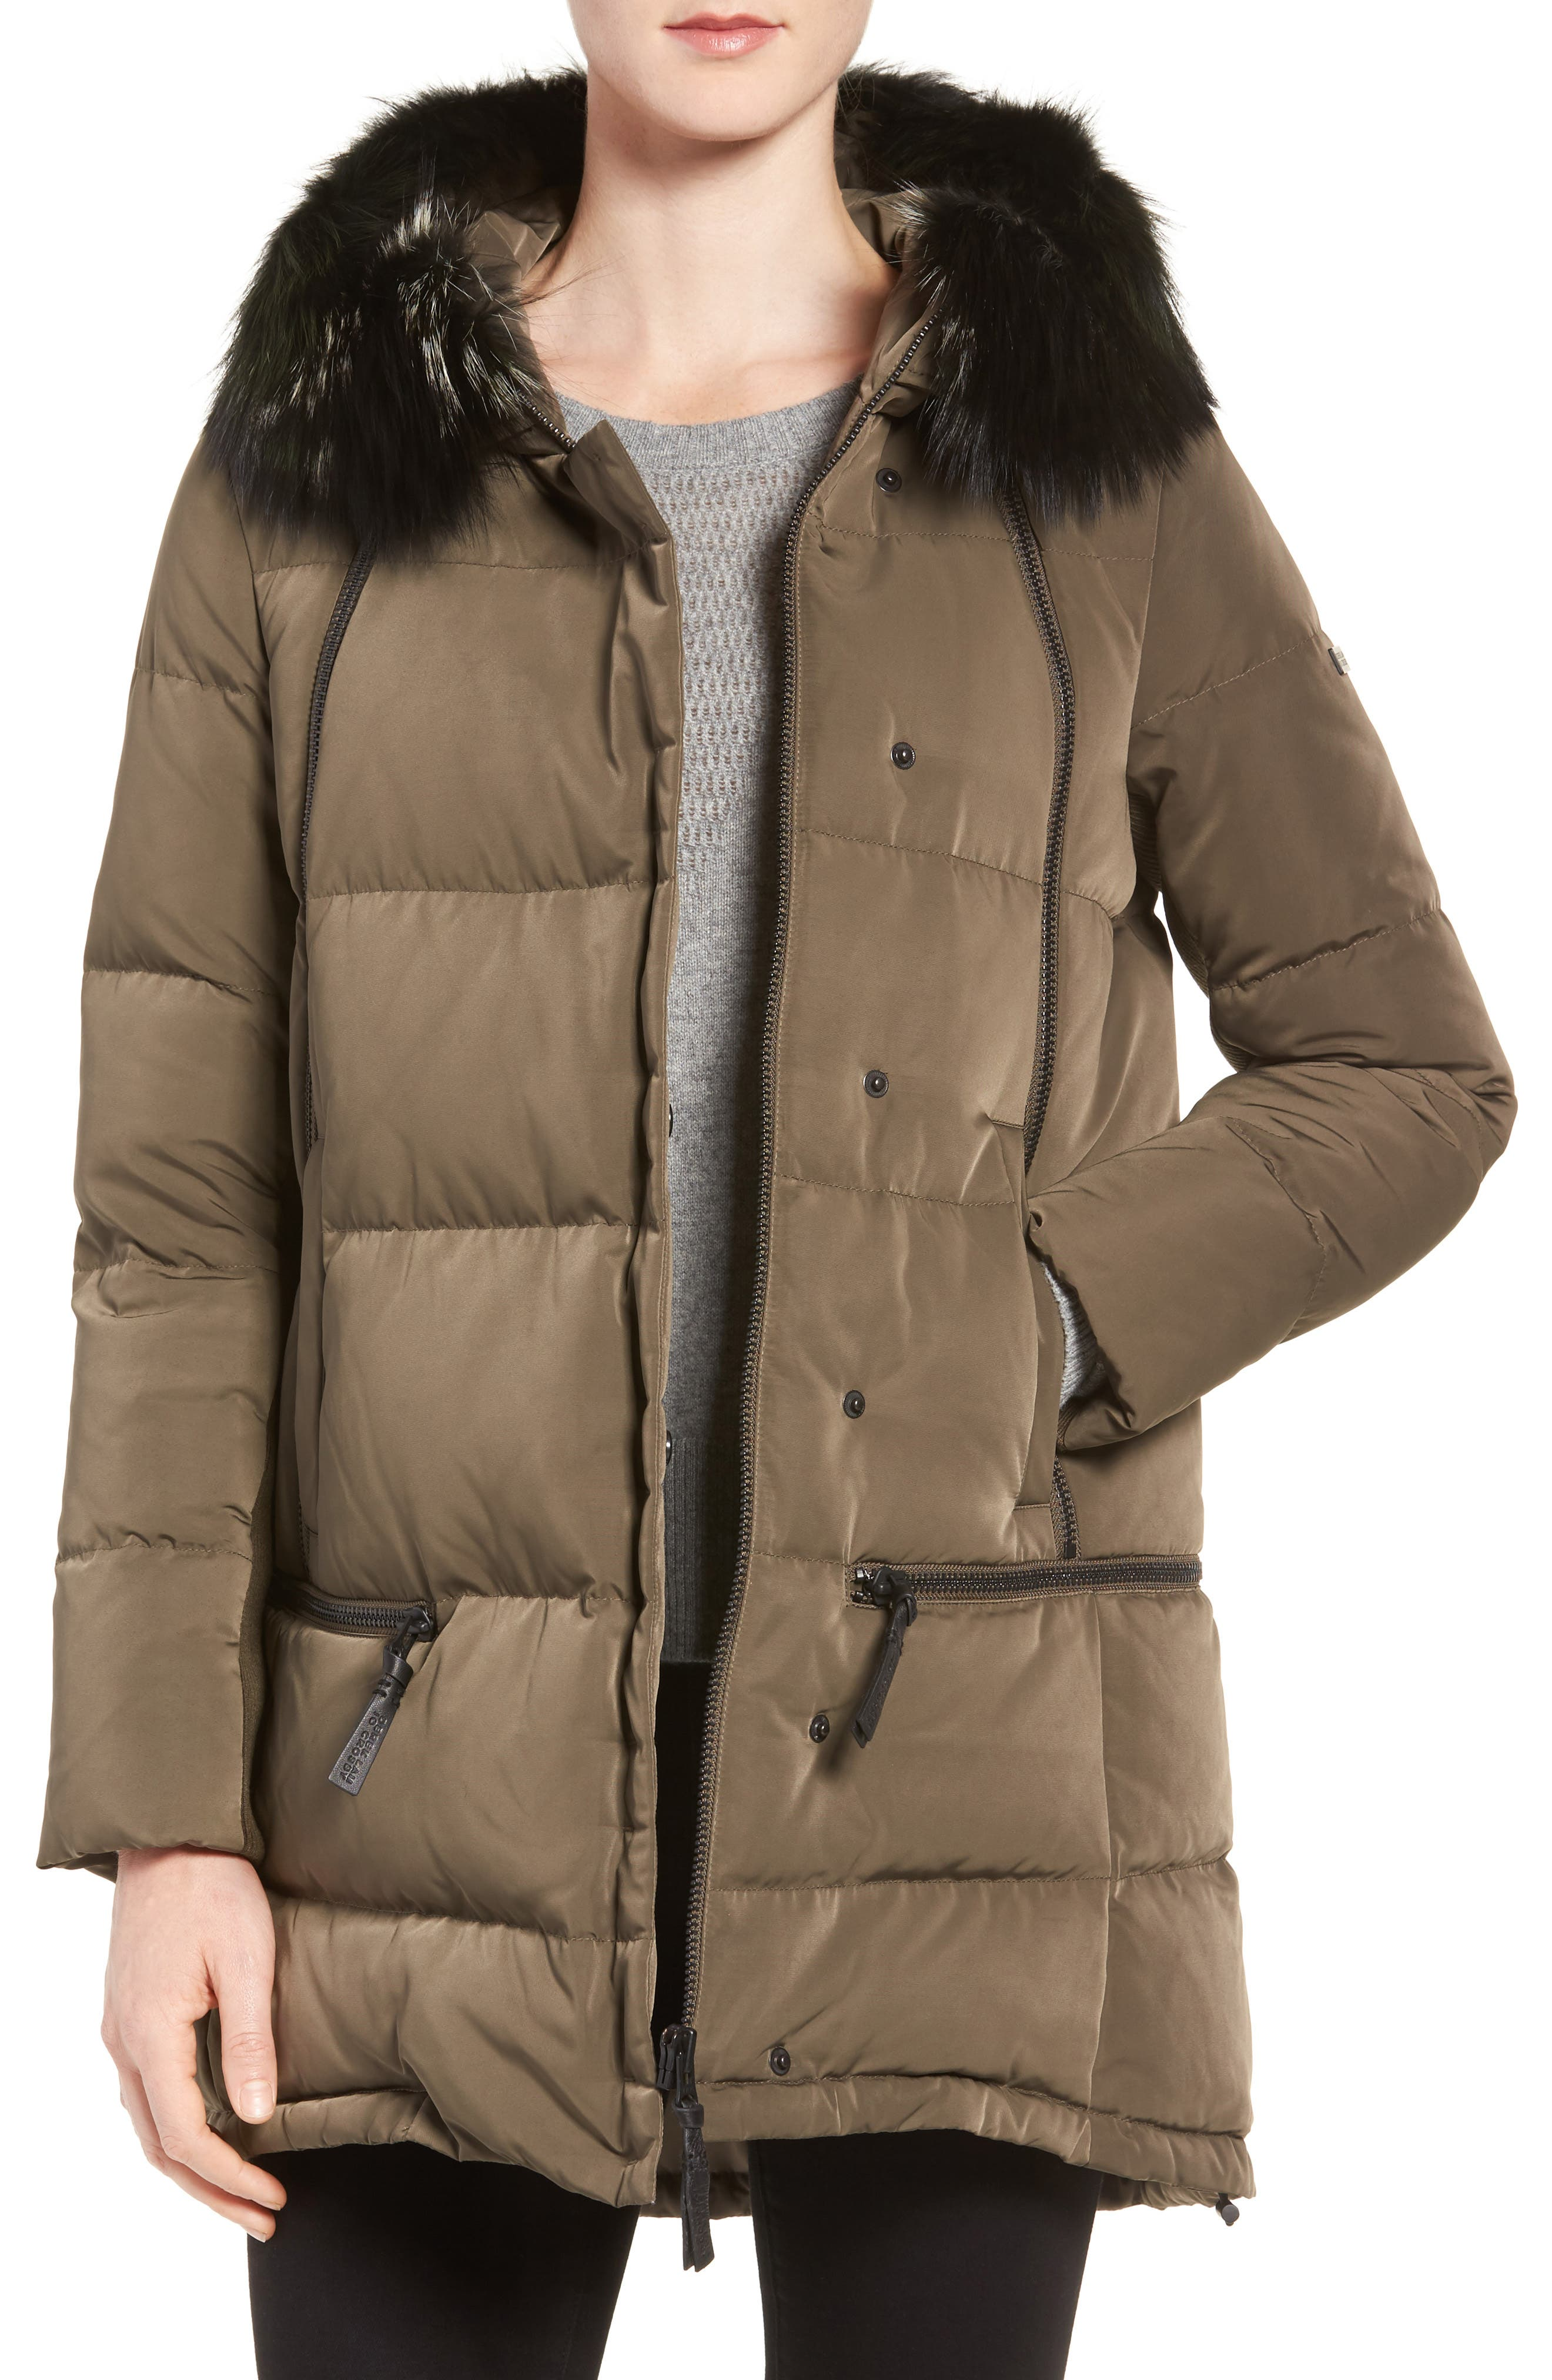 Derek Lam 10 Crosby Relaxed Water Resistant Down Parka with Genuine Fox Fur Trim